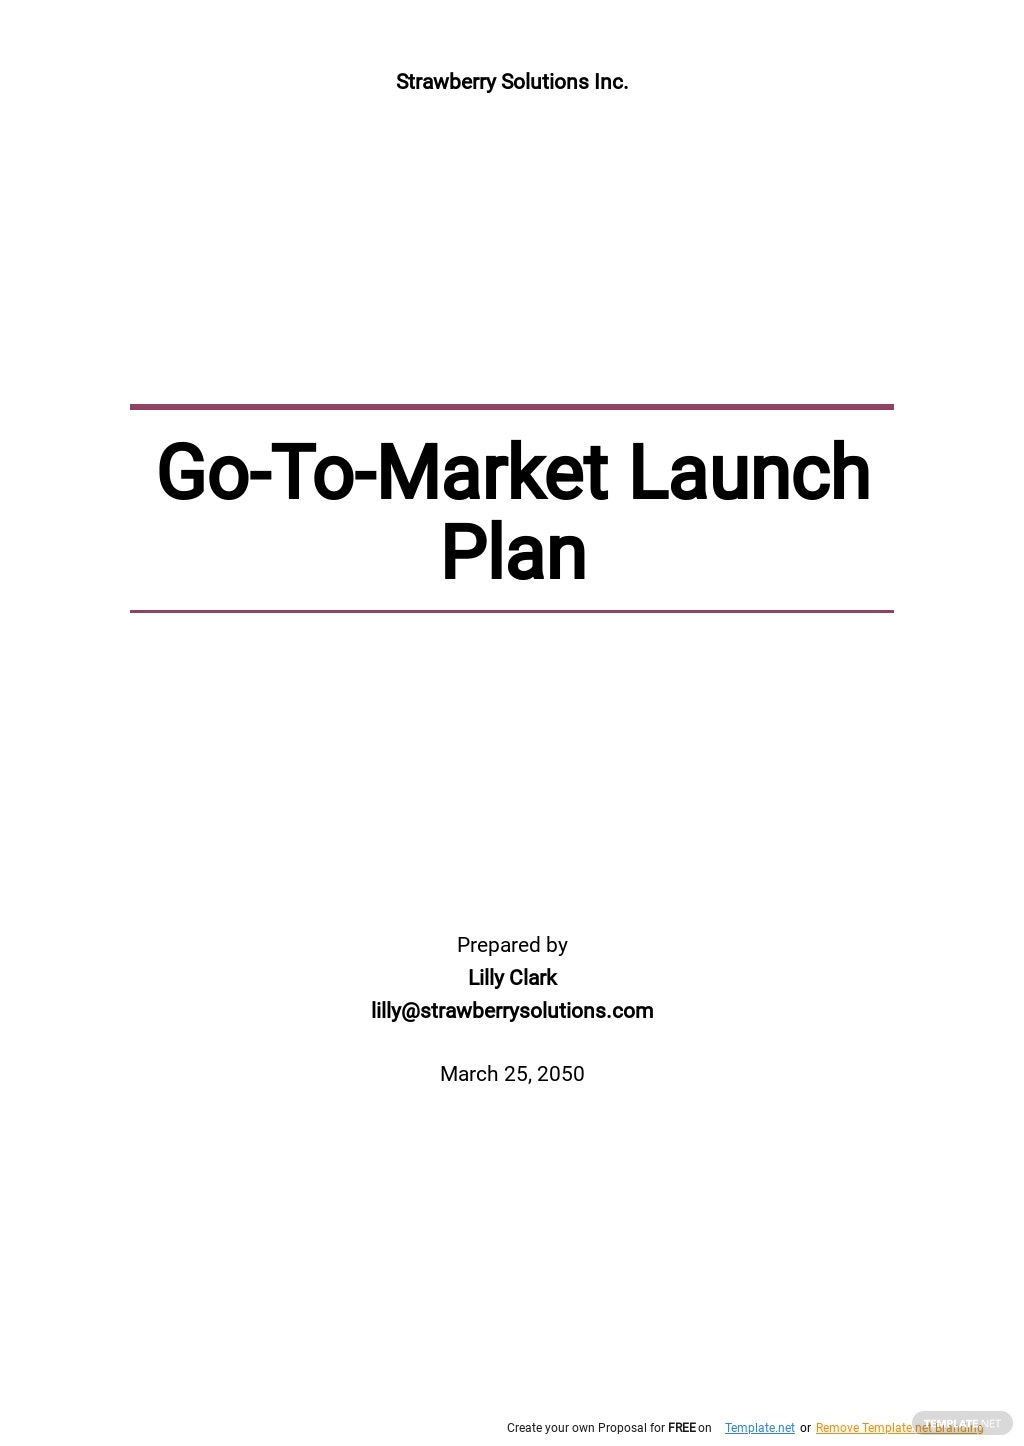 Go To Market Launch Plan Template.jpe